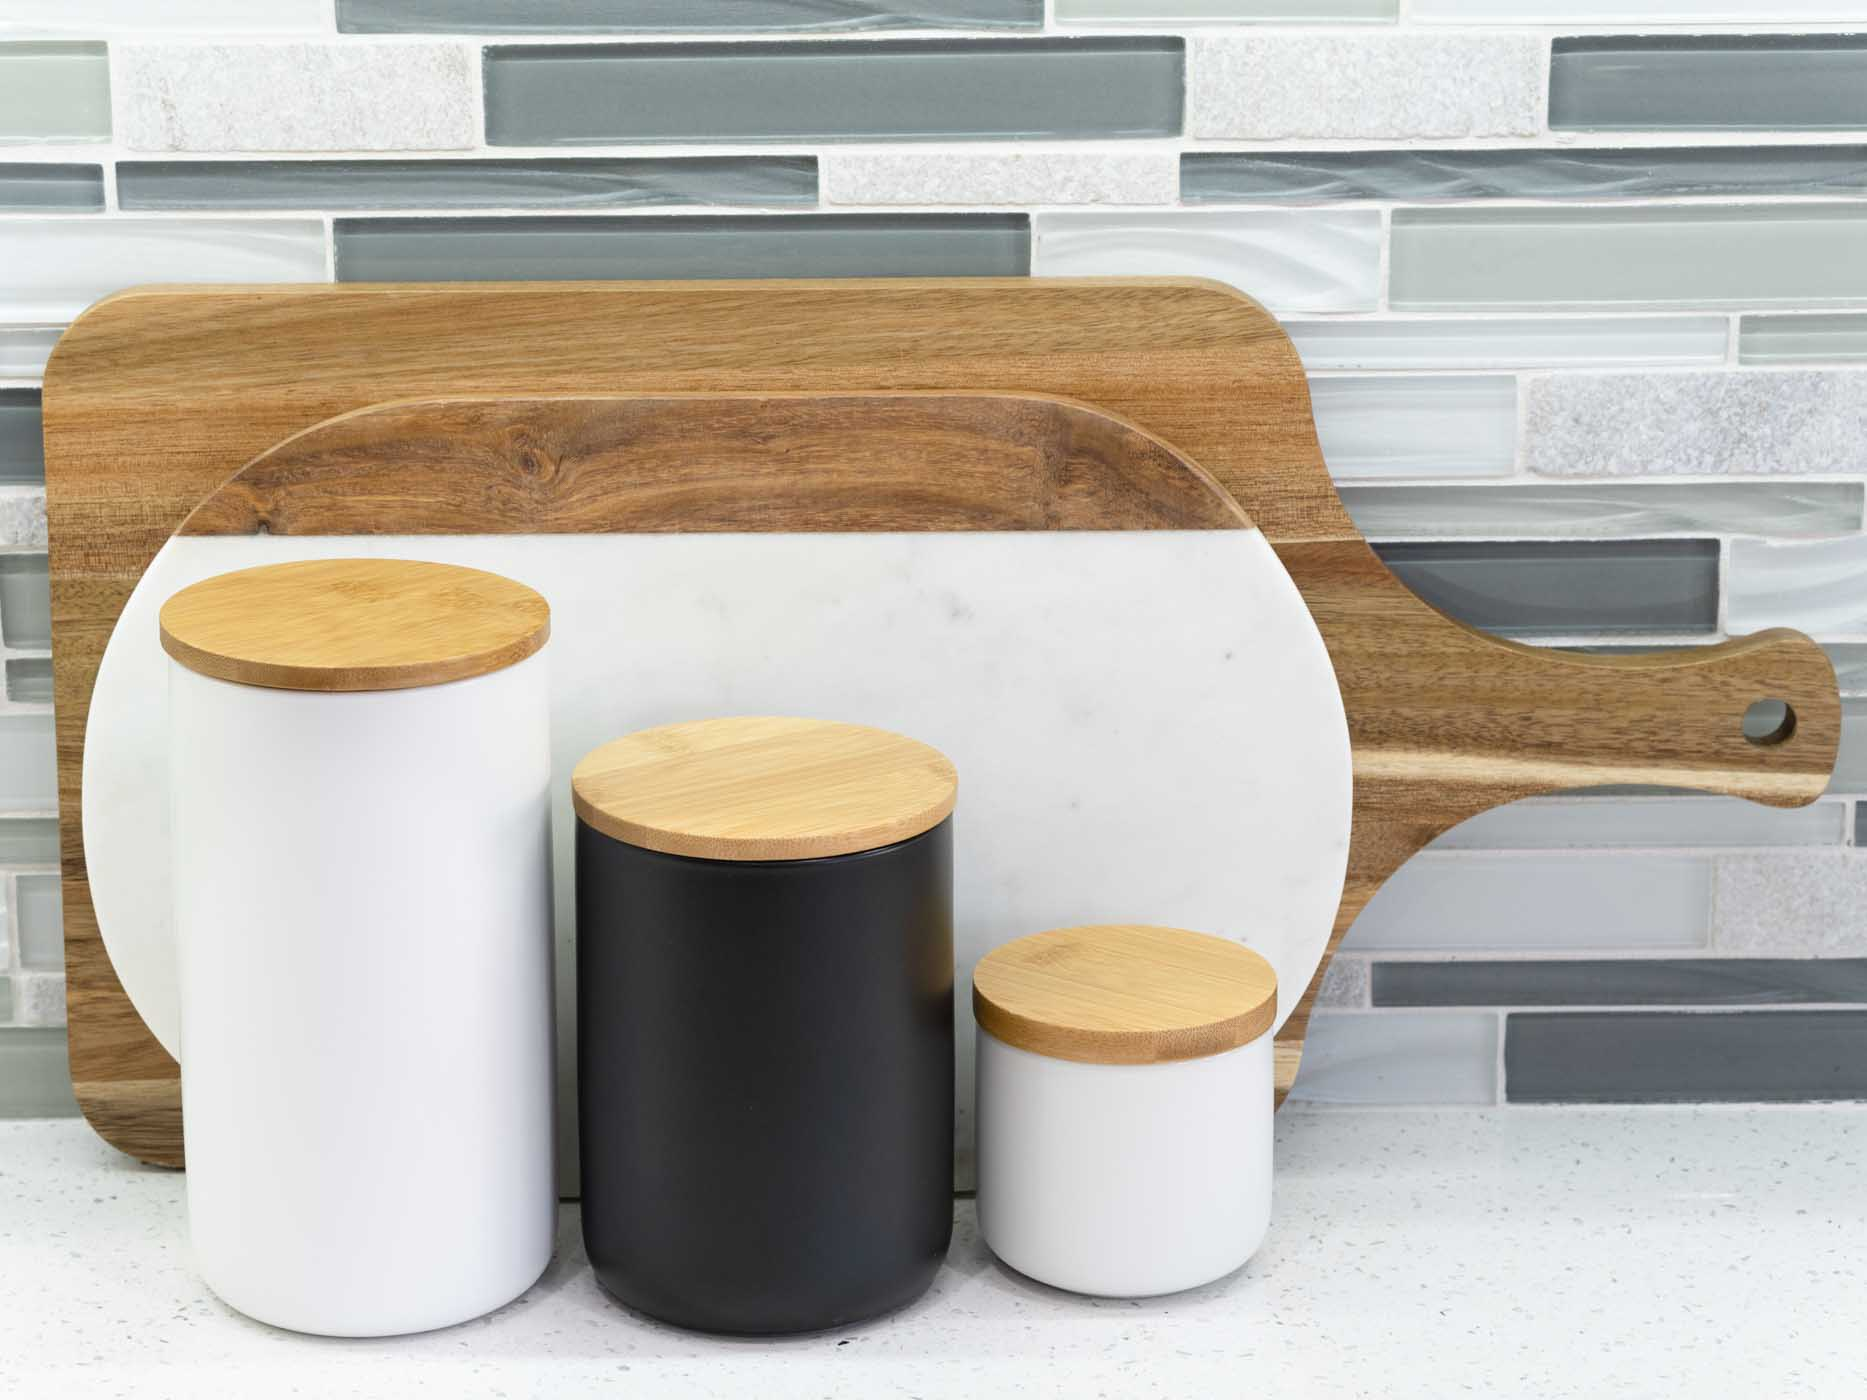 wooden cutting boards with black and white storage canisters on a white kitchen countertop